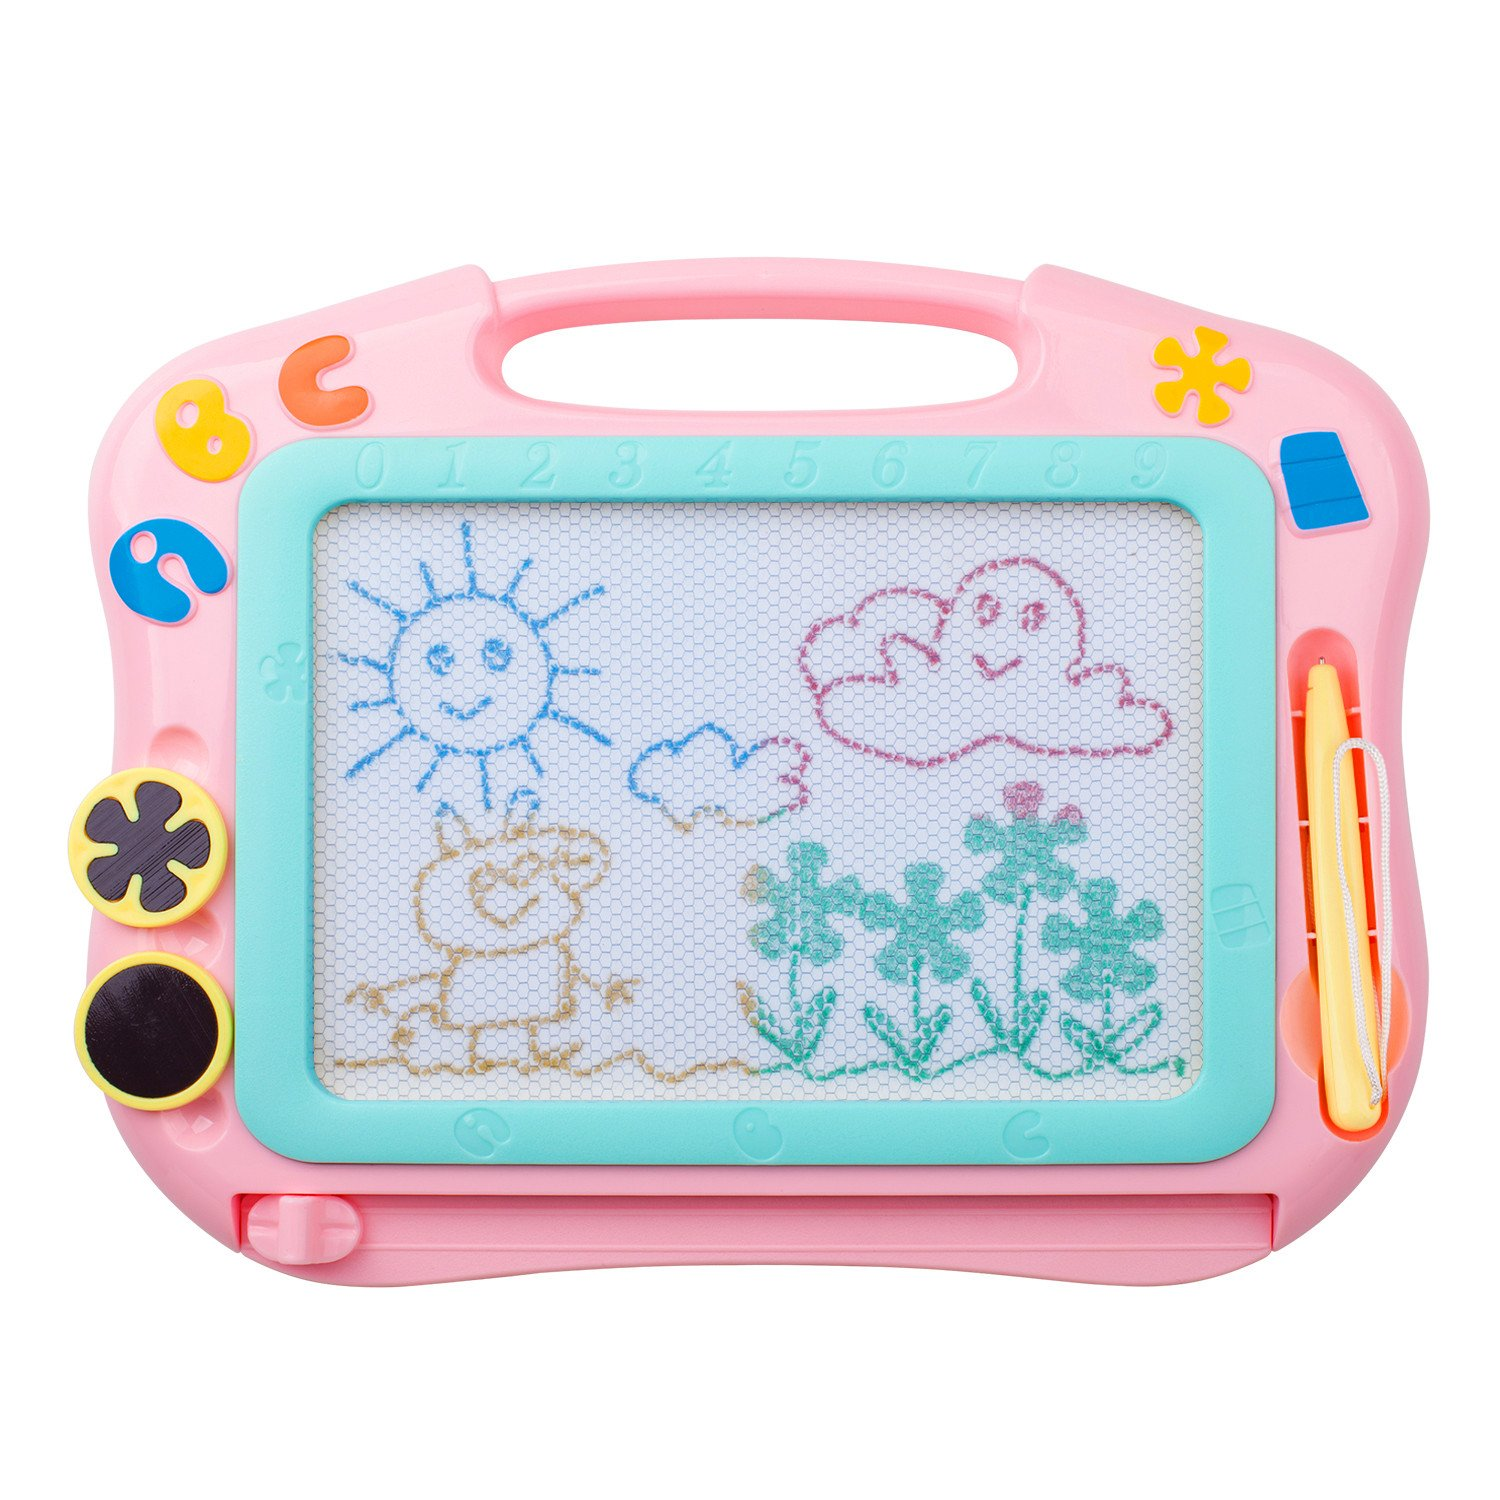 ikidsislands IKS85P [Travel Size] Color Magnetic Drawing Board for Kids & Toddlers - Non Toxic Mini Magna Sketch Doodle Educational Toy for Girls, with 1 Pen & 2 Stamps (Pink)